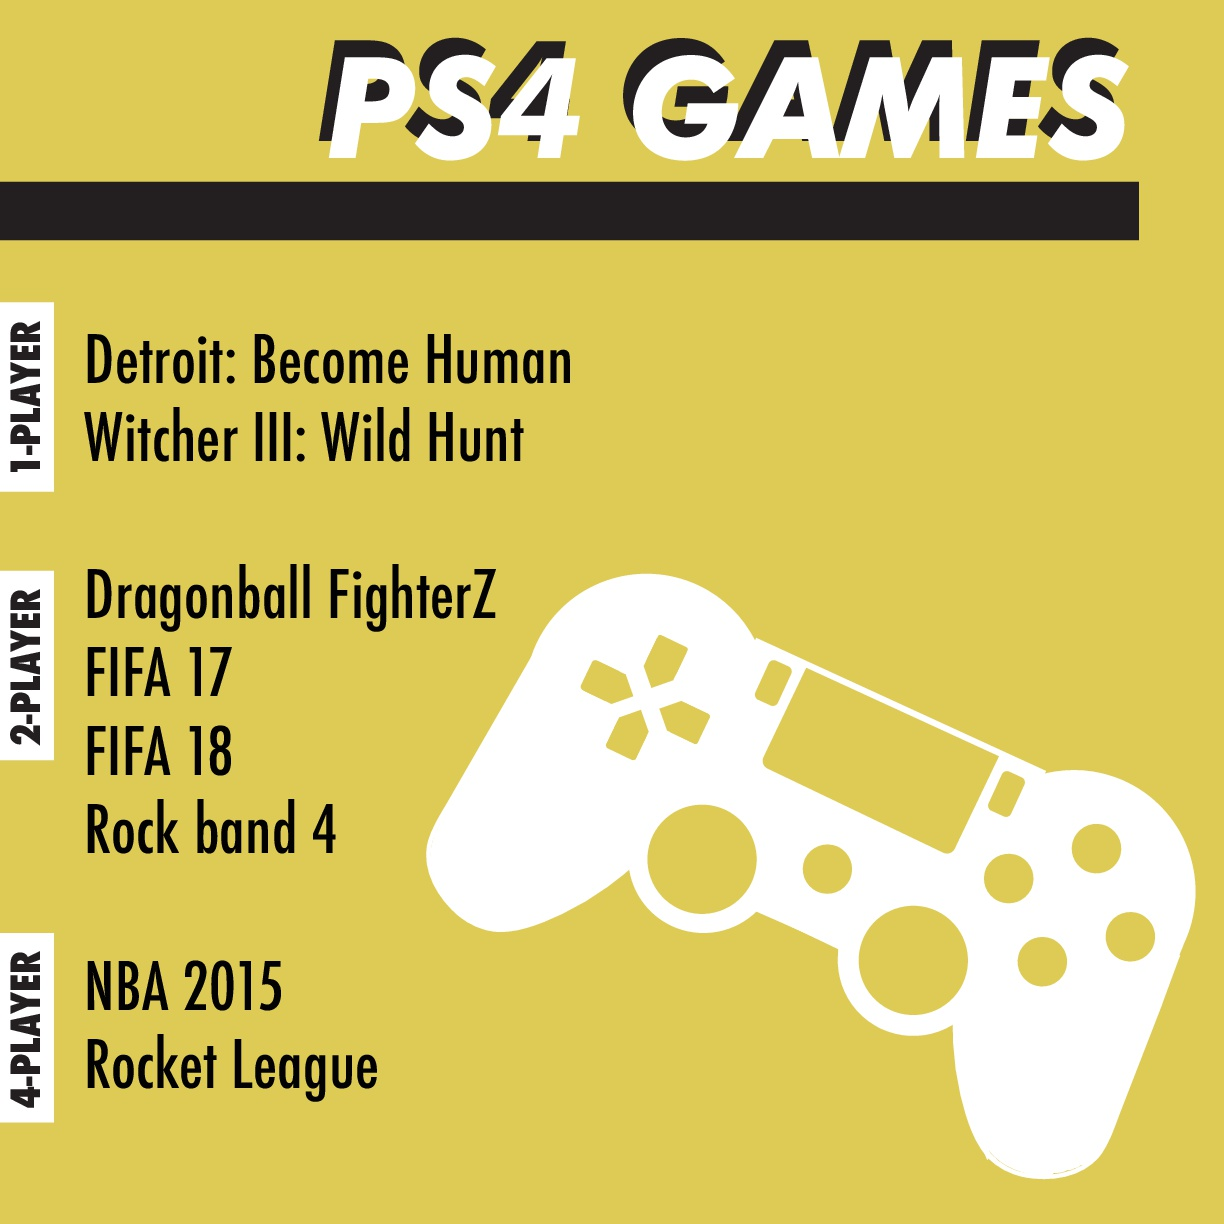 ASLC Student Life Gaming - PS4 Games